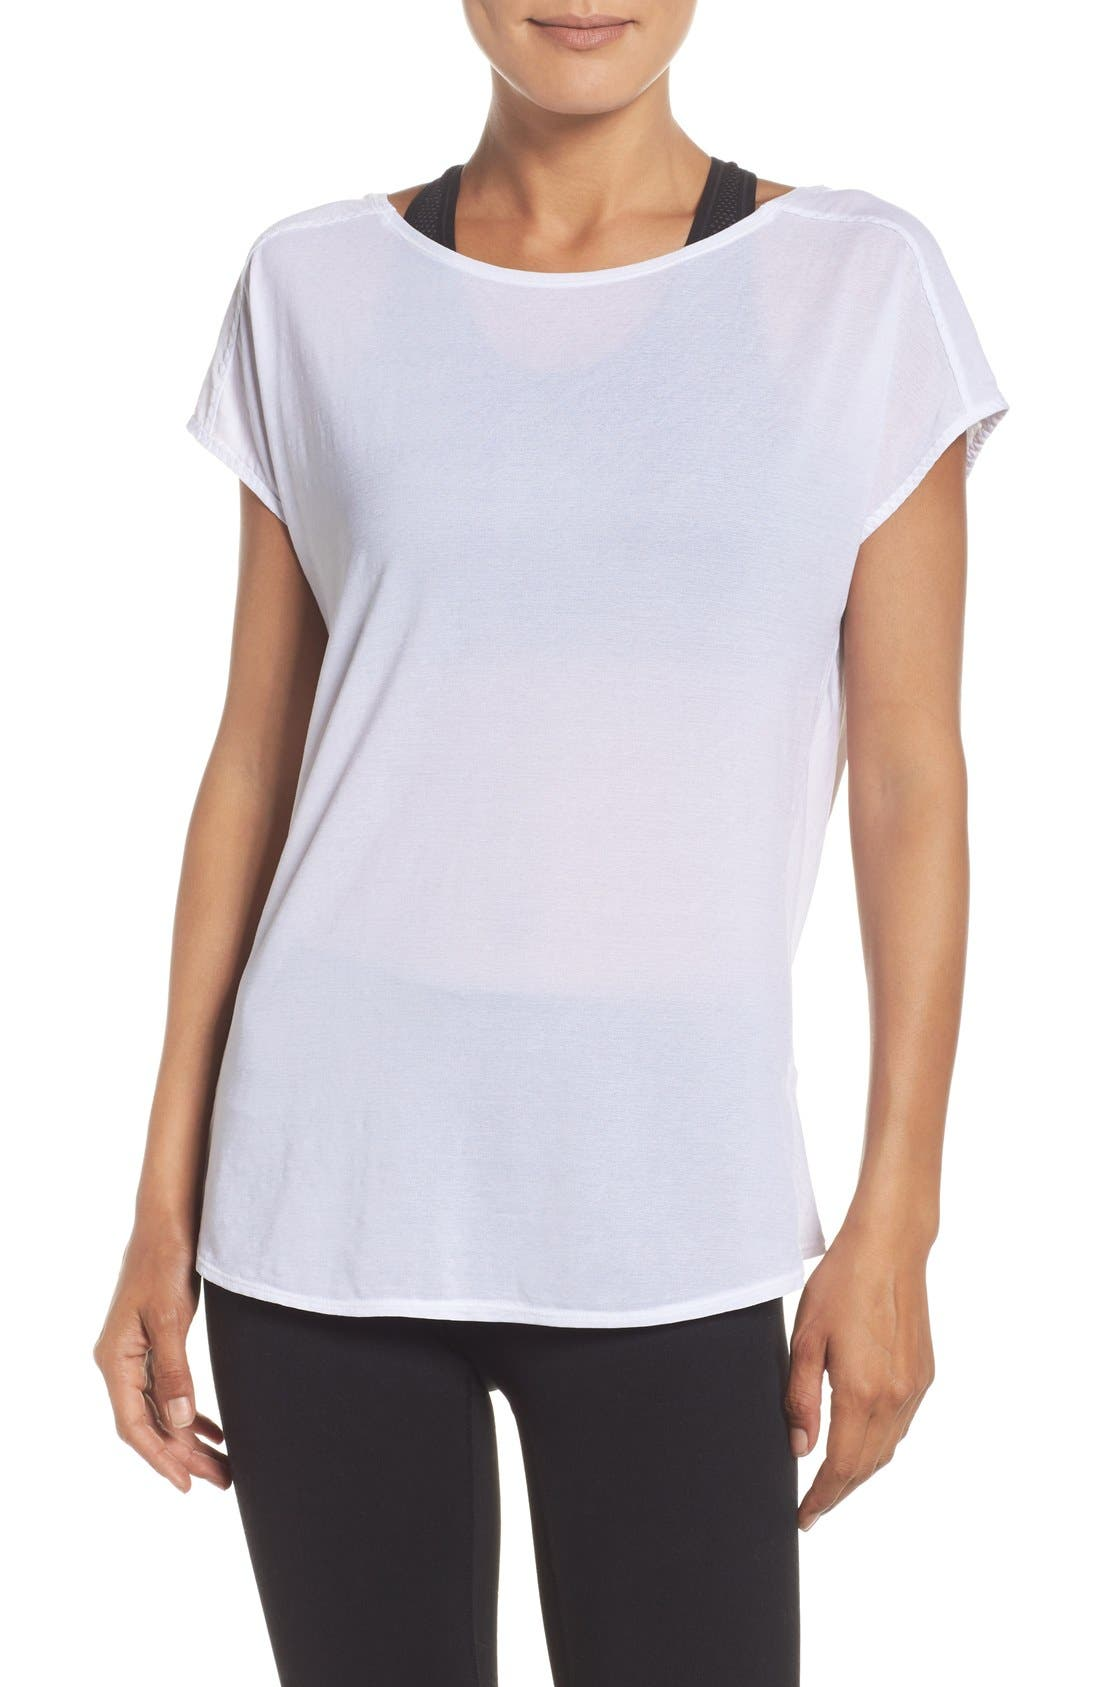 Main Image - Zella Arabesque Convertible Tee